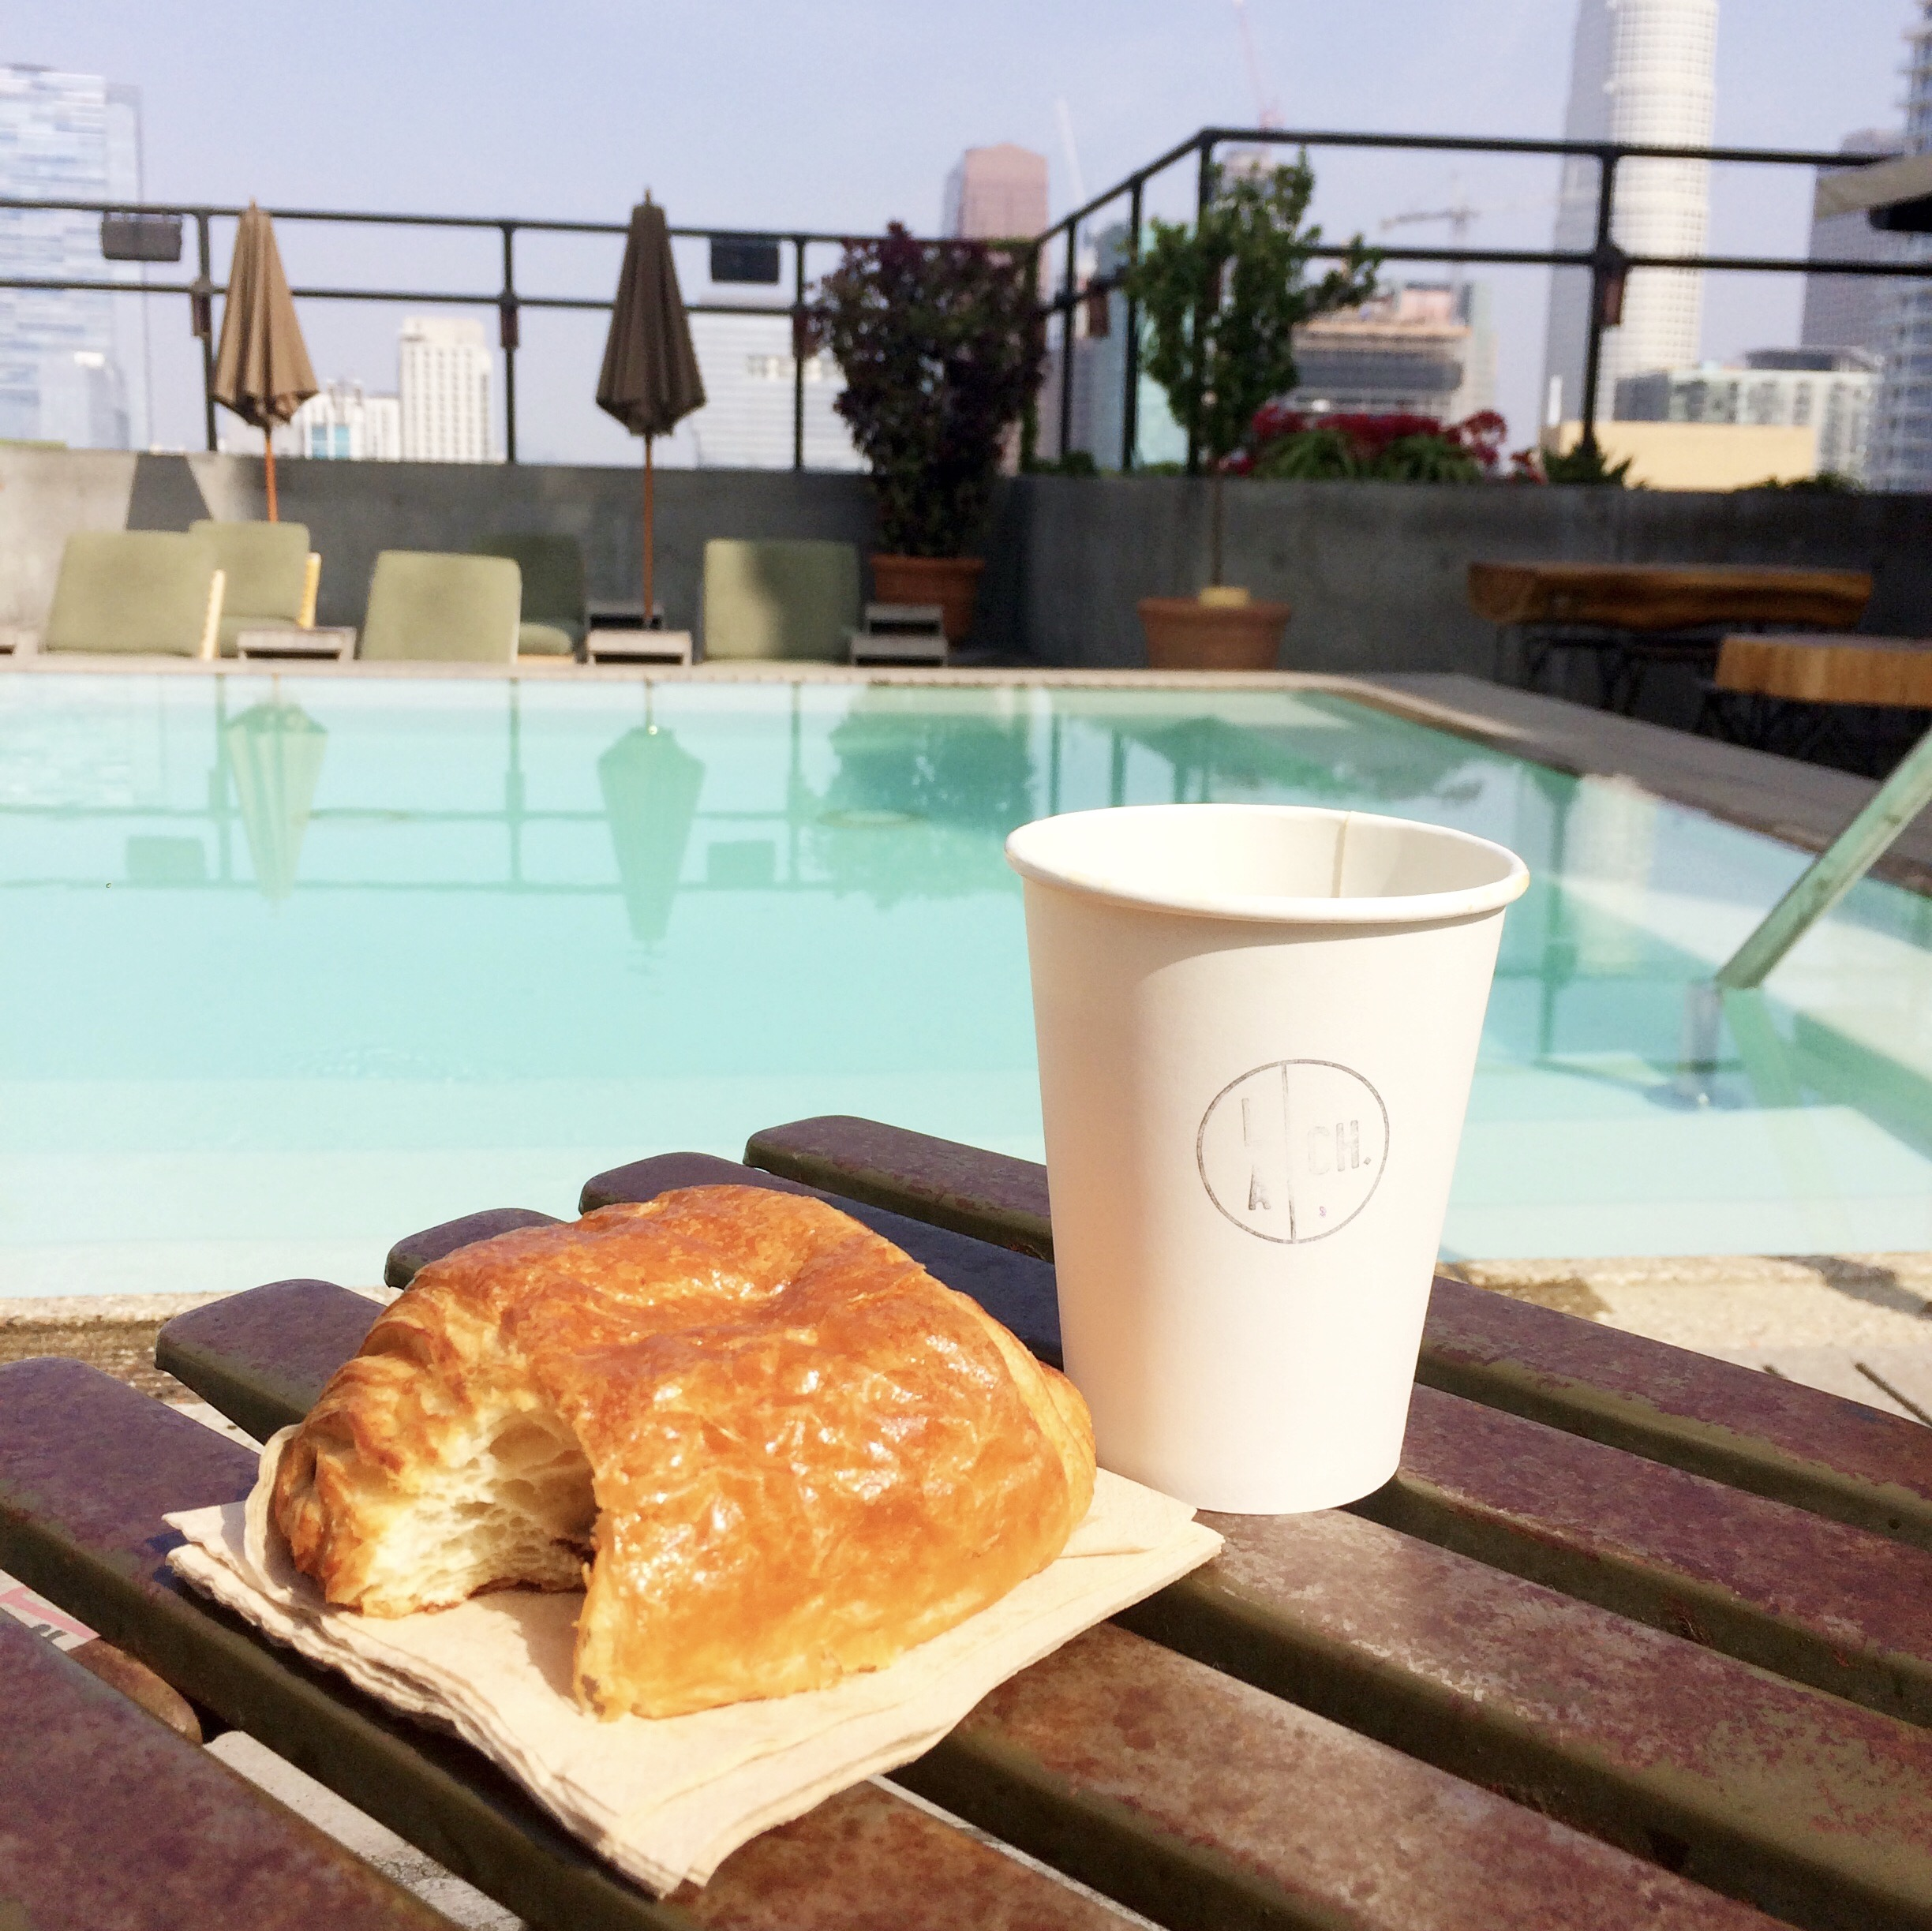 Im-A-Meal-Prep-Skeptic-Croissant-Coffee-Rooftop-ACE-Hotel-Los-Angeles-Square.jpg